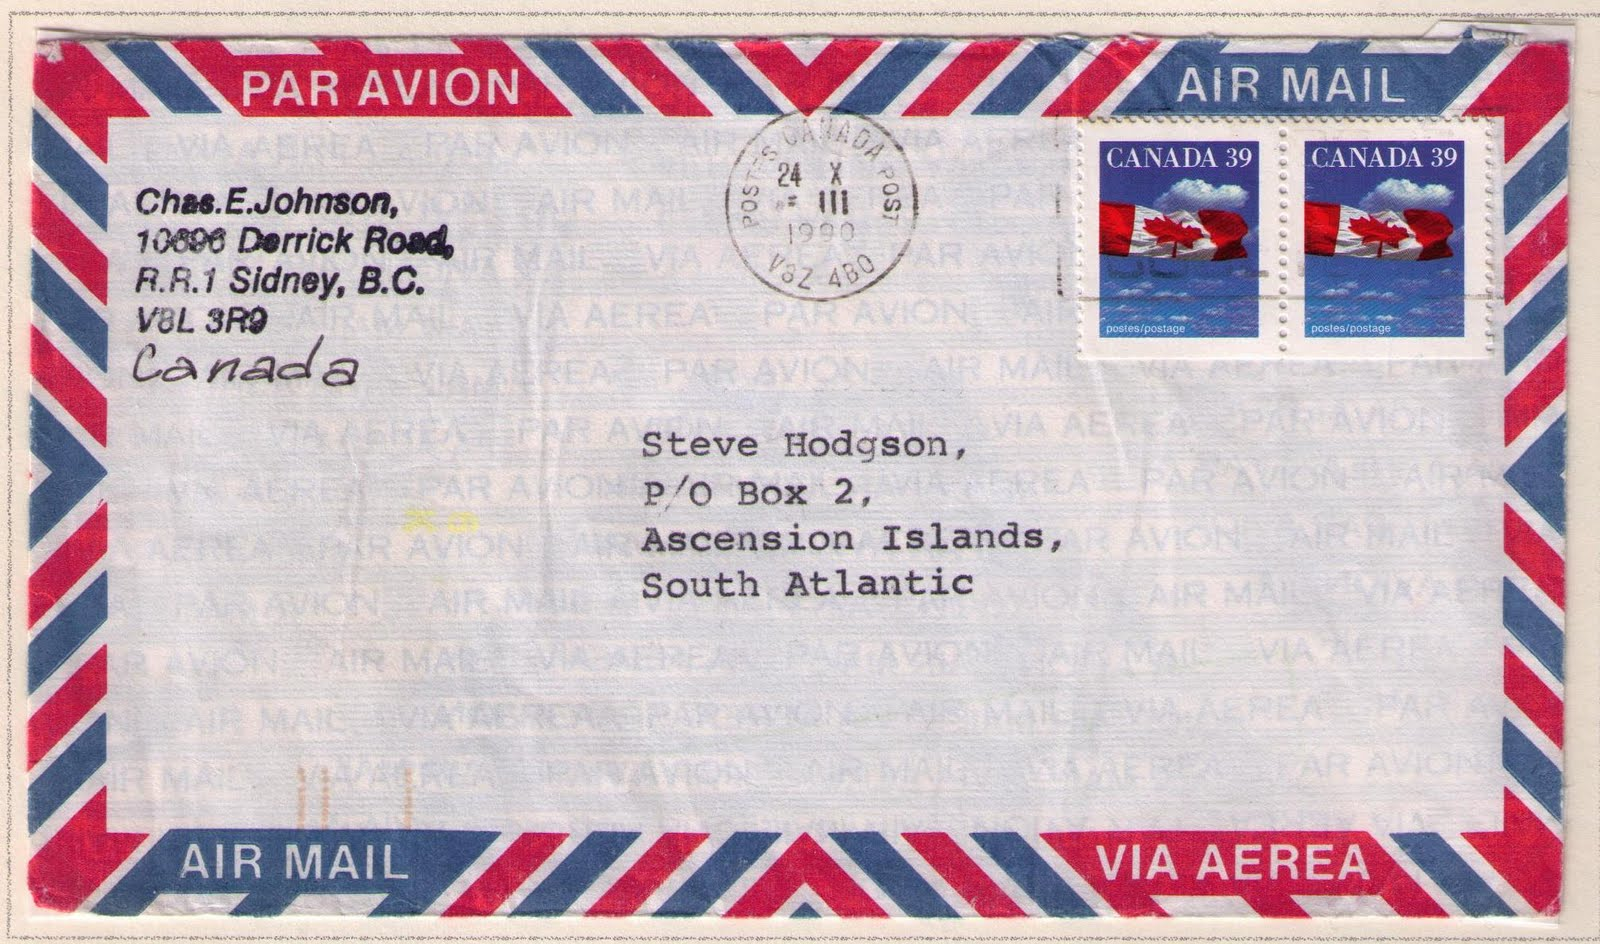 Vancouver to Ascension Island, October 24, 1960